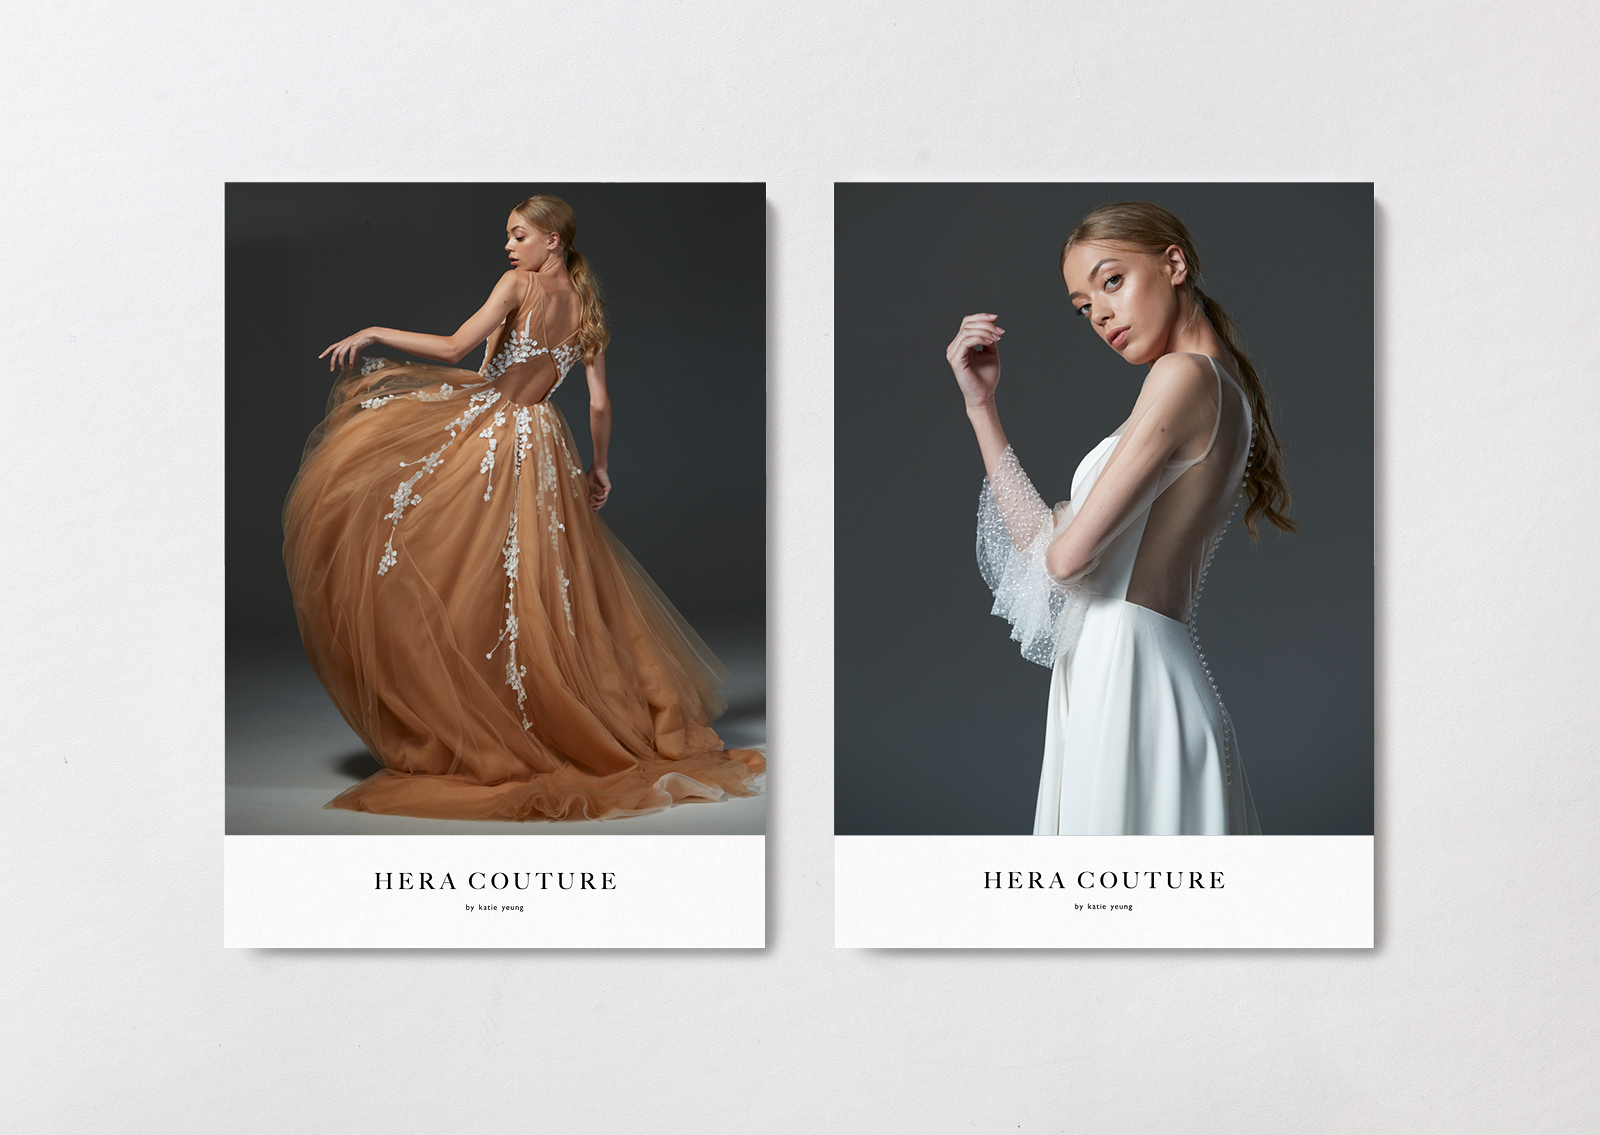 Hera Couture brand postcards show dramatic gown silhouettes and intricate details